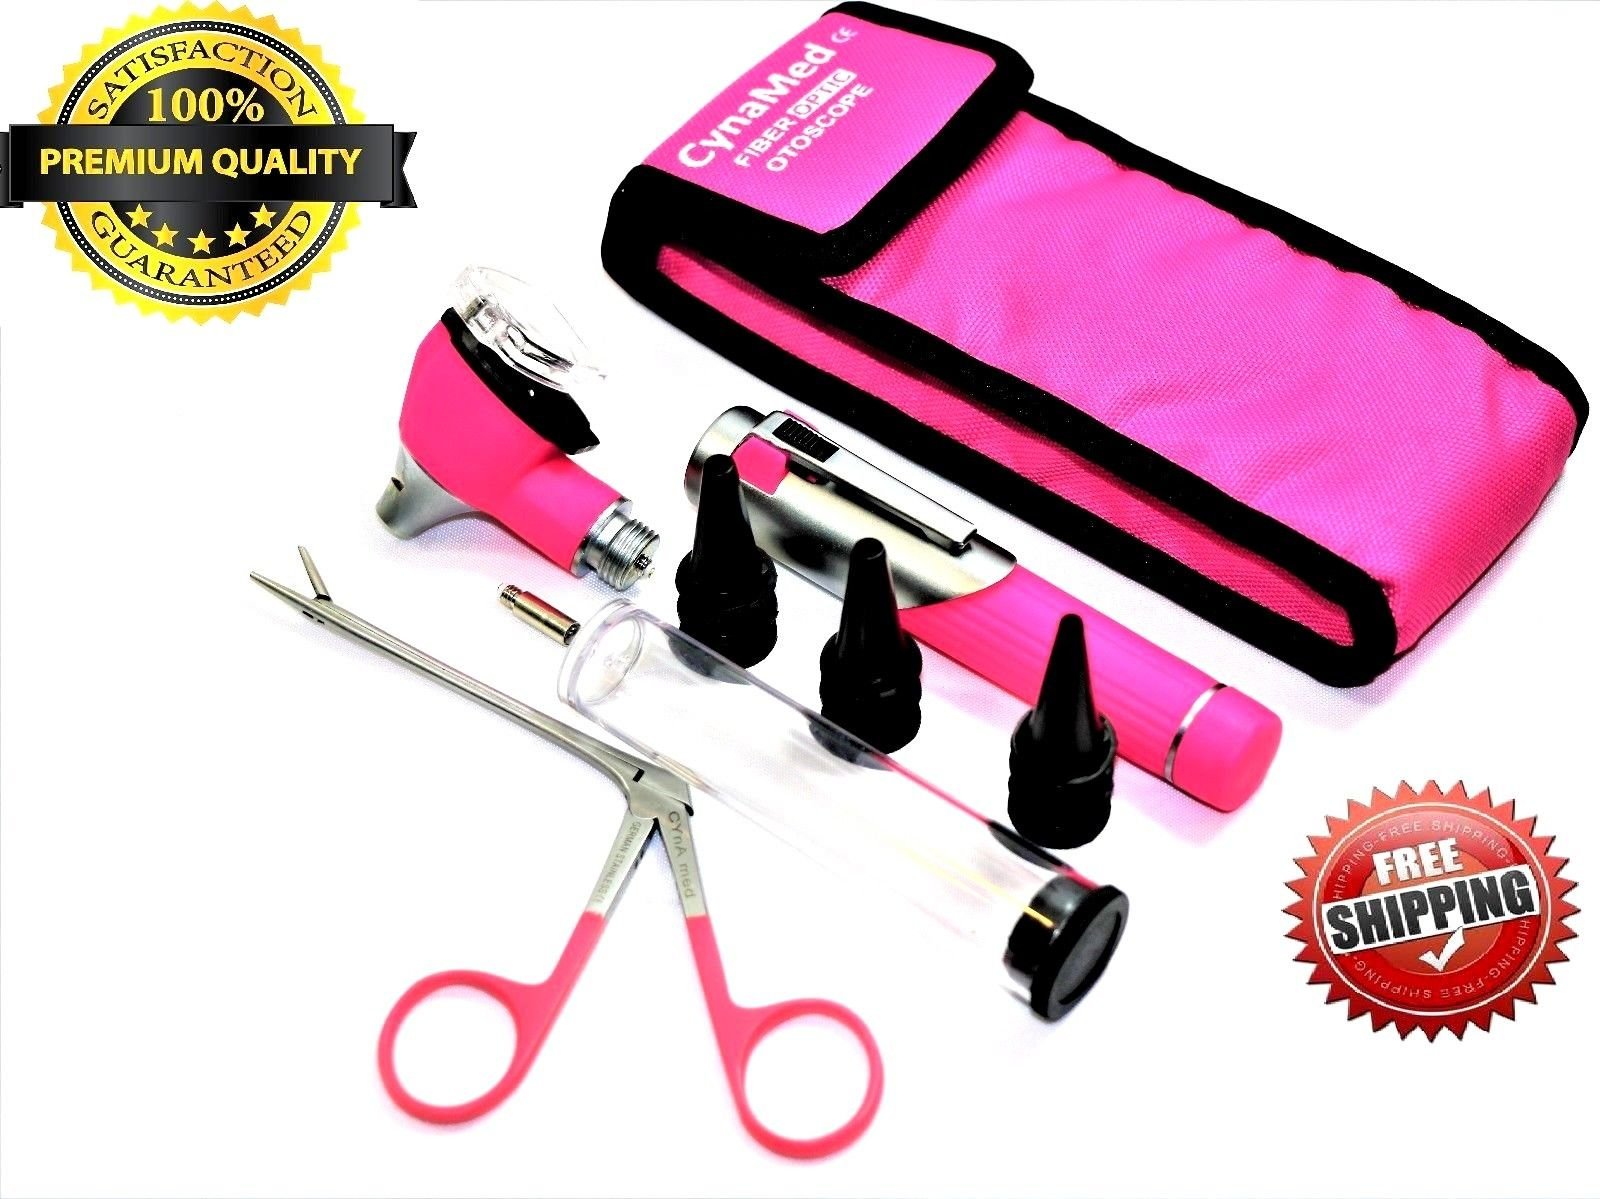 Premium STUDENT HOME USE LED Bright Light ENT Diagnostic Otoscope Pocket Size ( PINK ) + ALIGATOR EAR NOSE FORCEPS + 1 Free Extra Replacement Bulb + 10 Speculas ( CYNAMED )